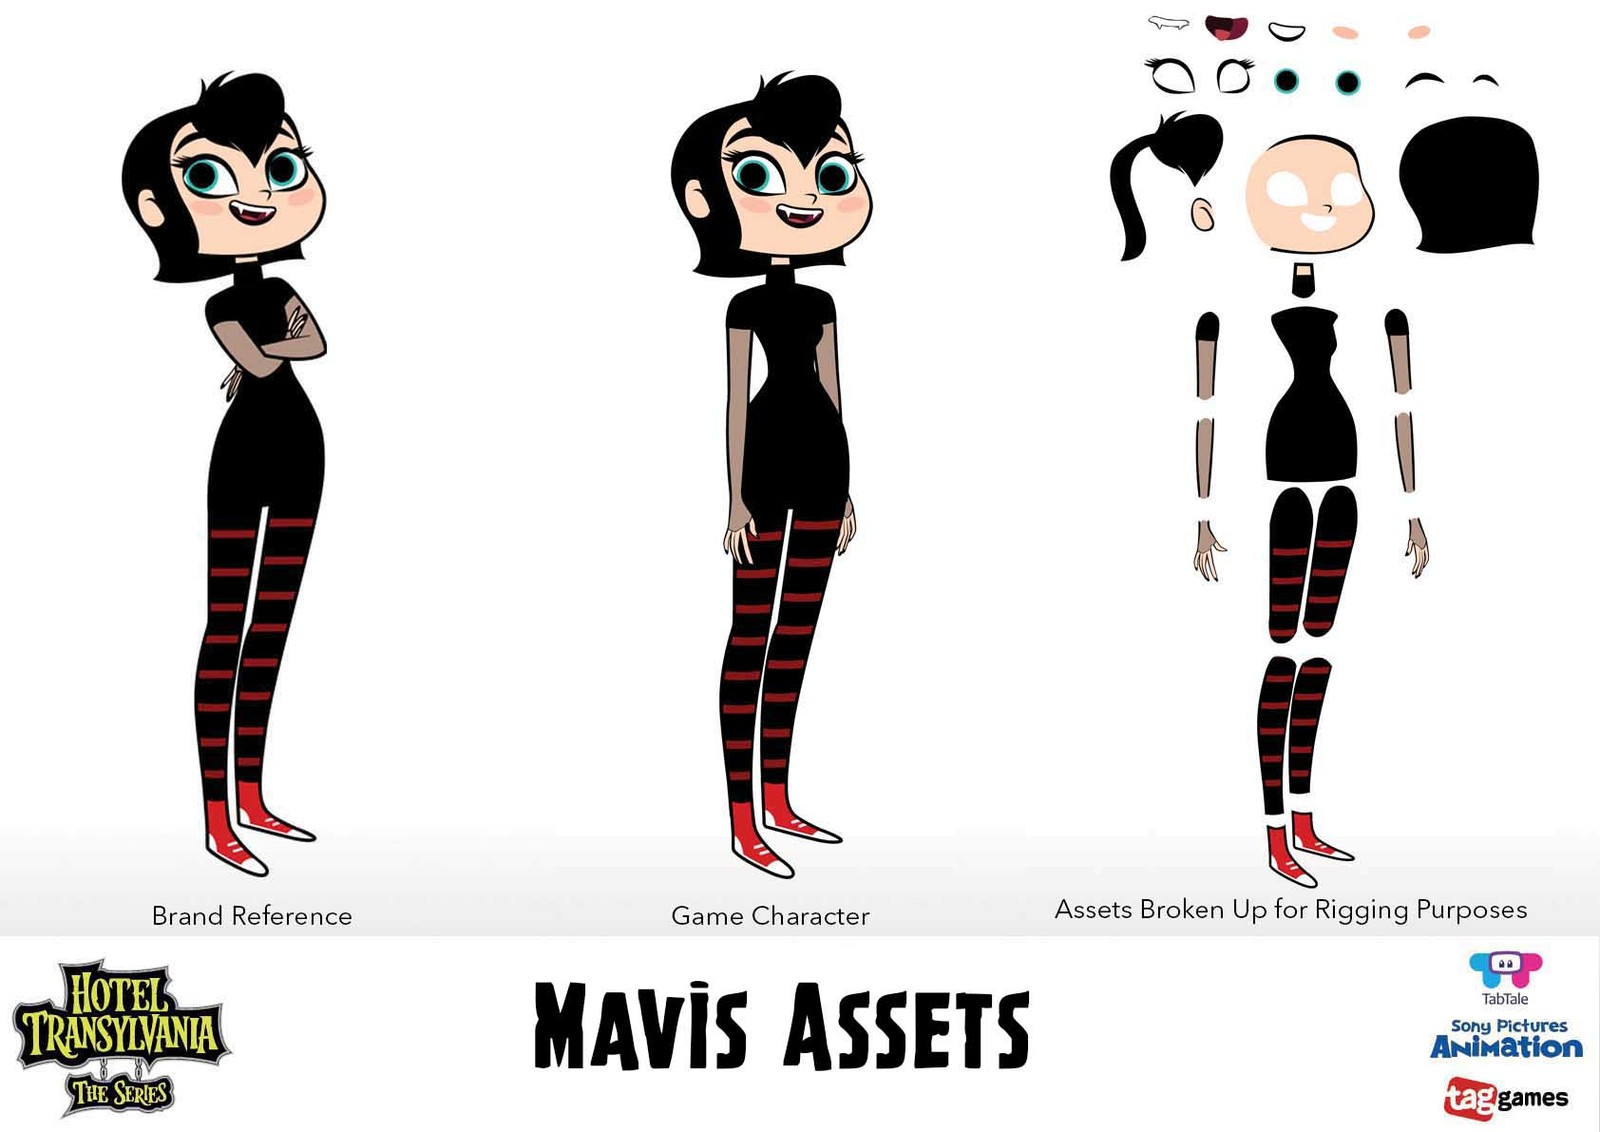 Character Assets broken up for rigging - Mavis